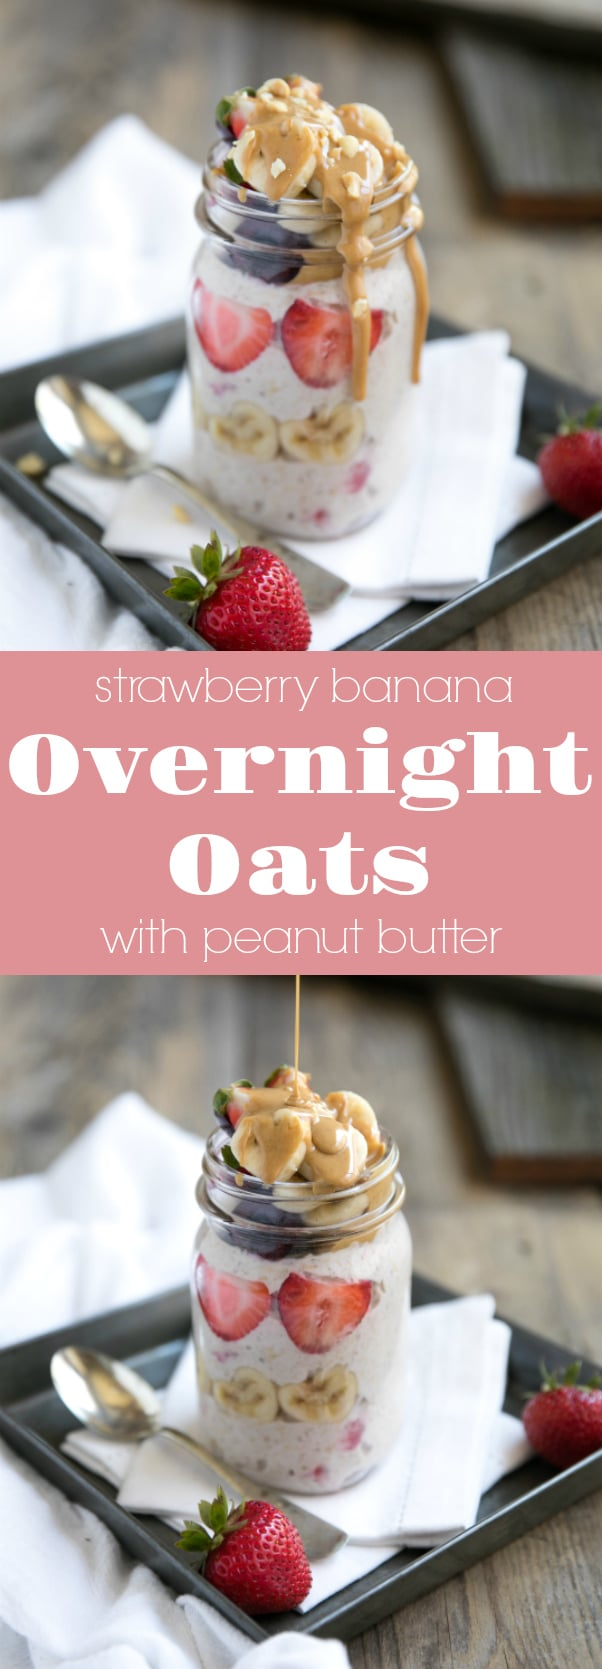 Strawberry Banana Overnight Oats with Peanut Butter via @theforkedspoon